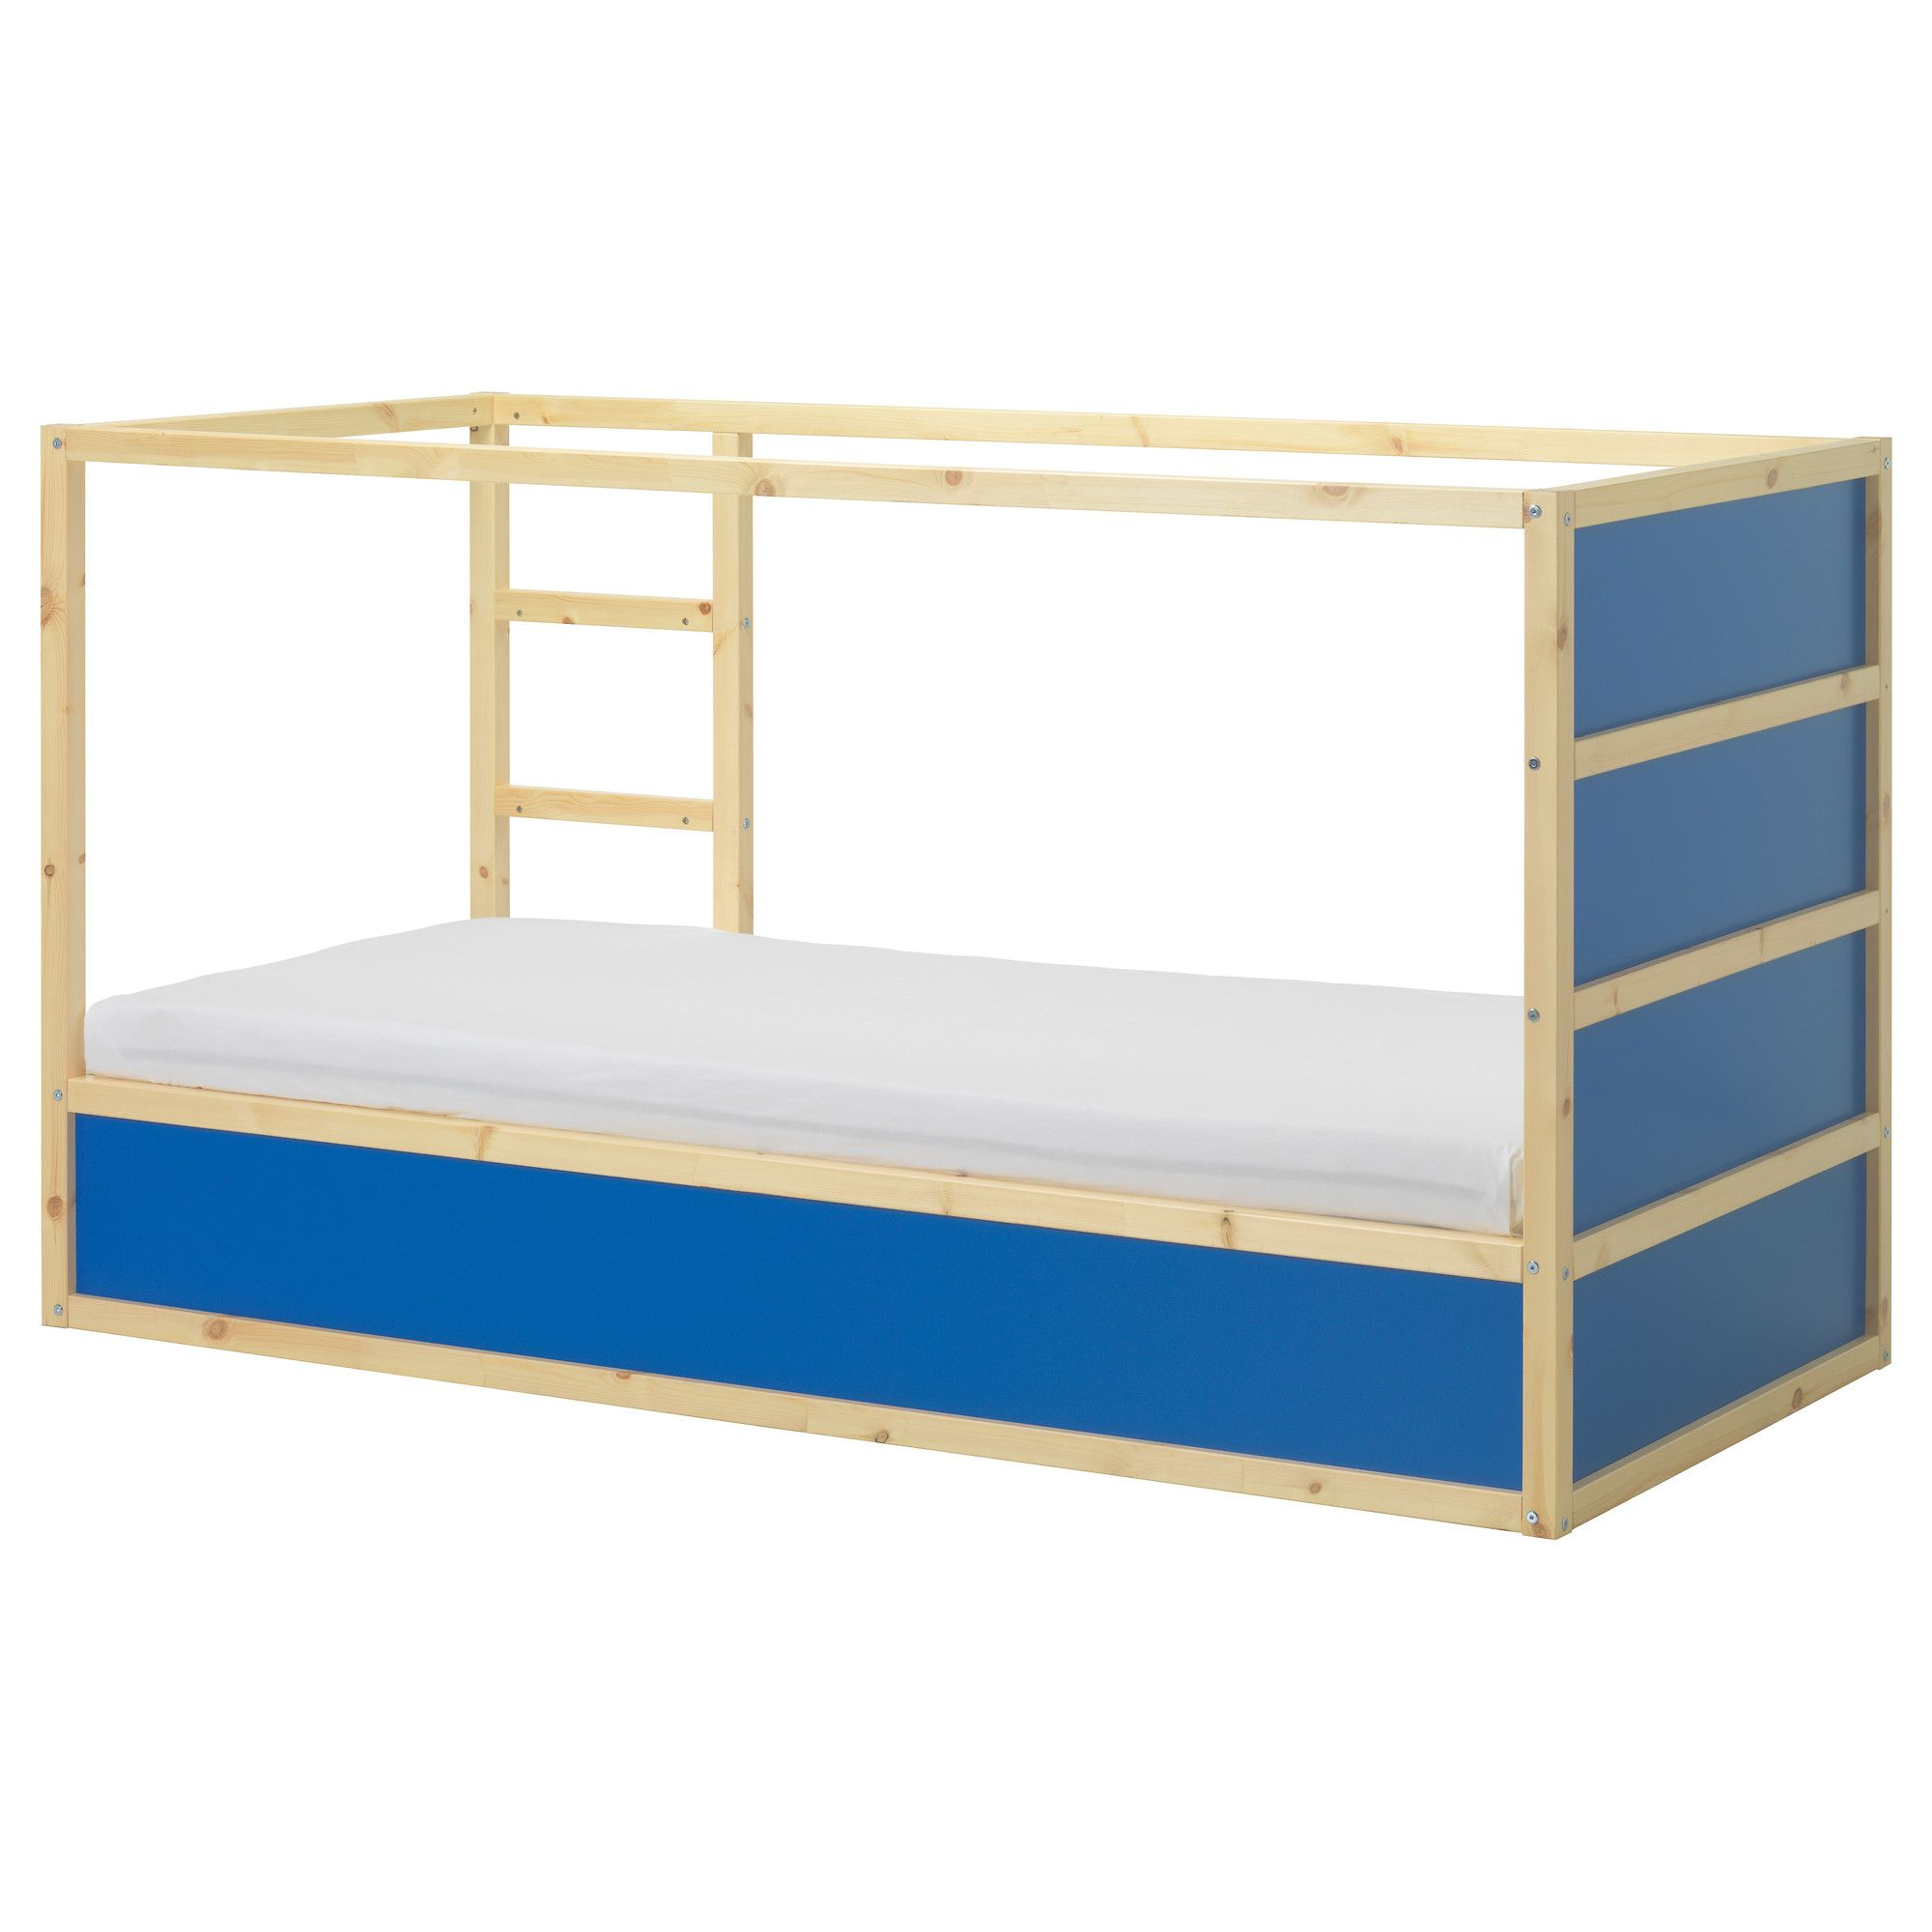 Us Furniture And Home Furnishings With Images Ikea Kids Bed